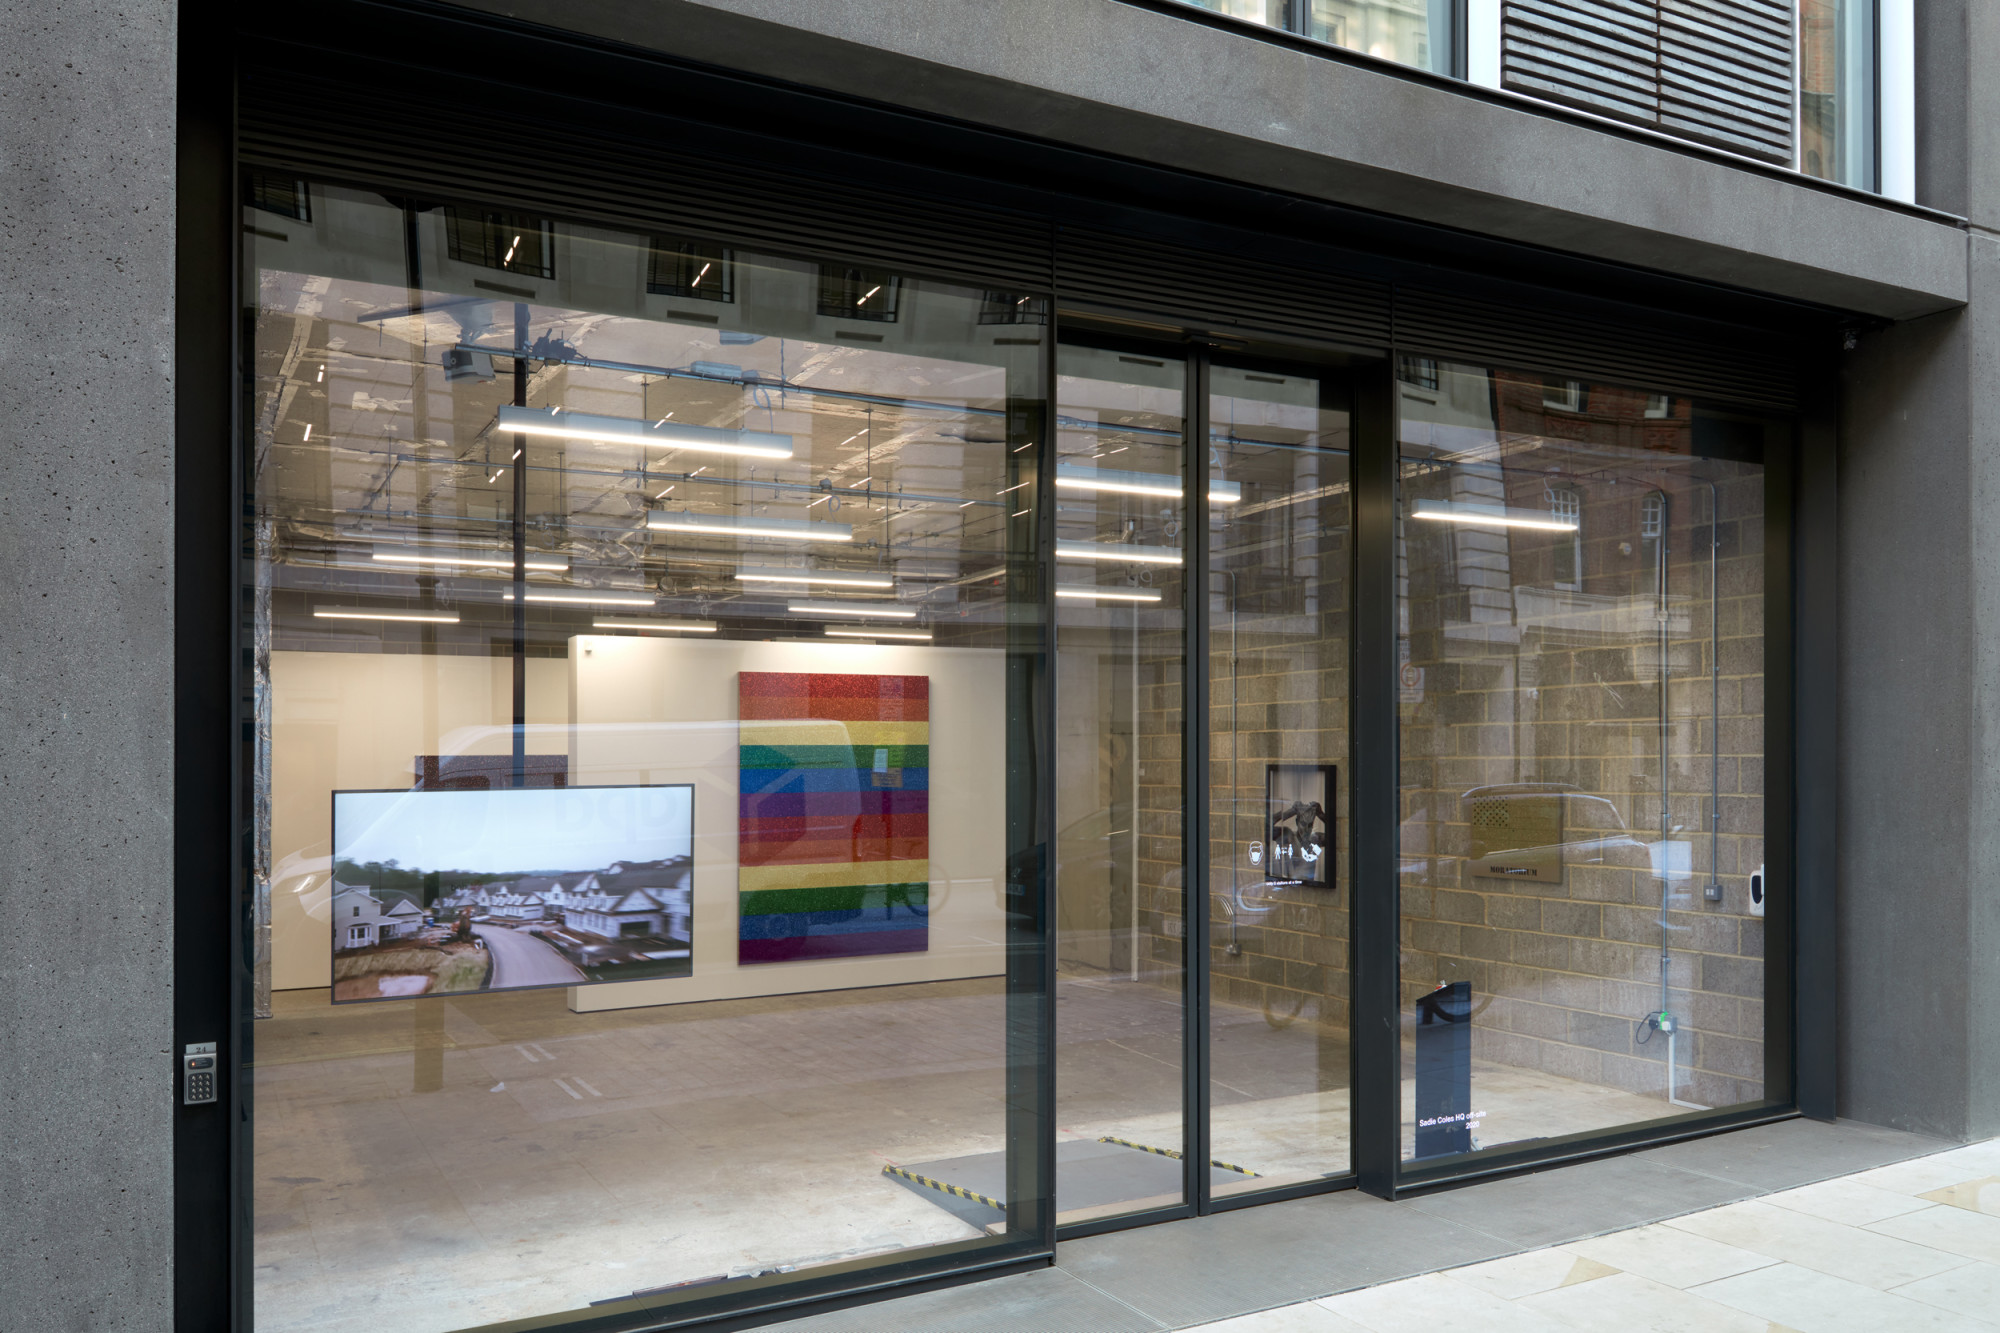 """<div class=""""artwork_caption""""><p>Installation view,DIS / Jonathan Horowitz, Sadie Coles HQ and Project Native Informant,24 Cork Street W1, 6 October - 31 October 2020</p><p>Photography by Robert Glowacki</p></div>"""